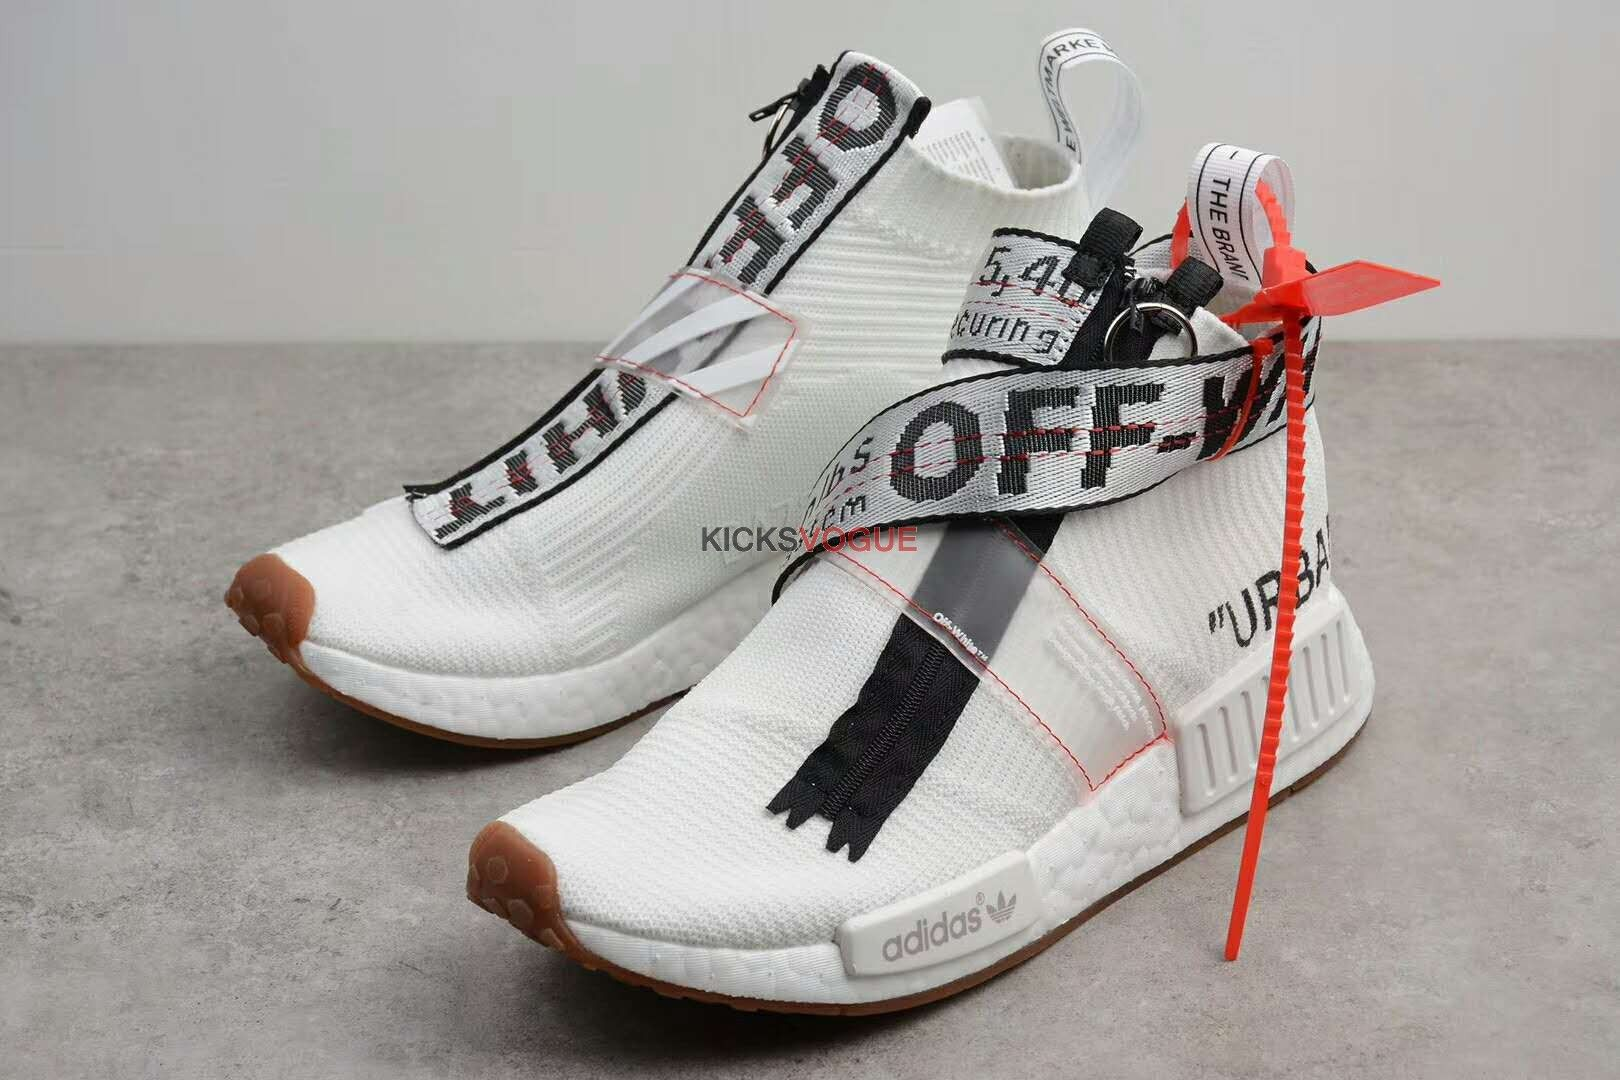 competitive price 90889 427dc Virgil Abloh OFF-WHITE Custom adidas Originals NMD City Sock ...